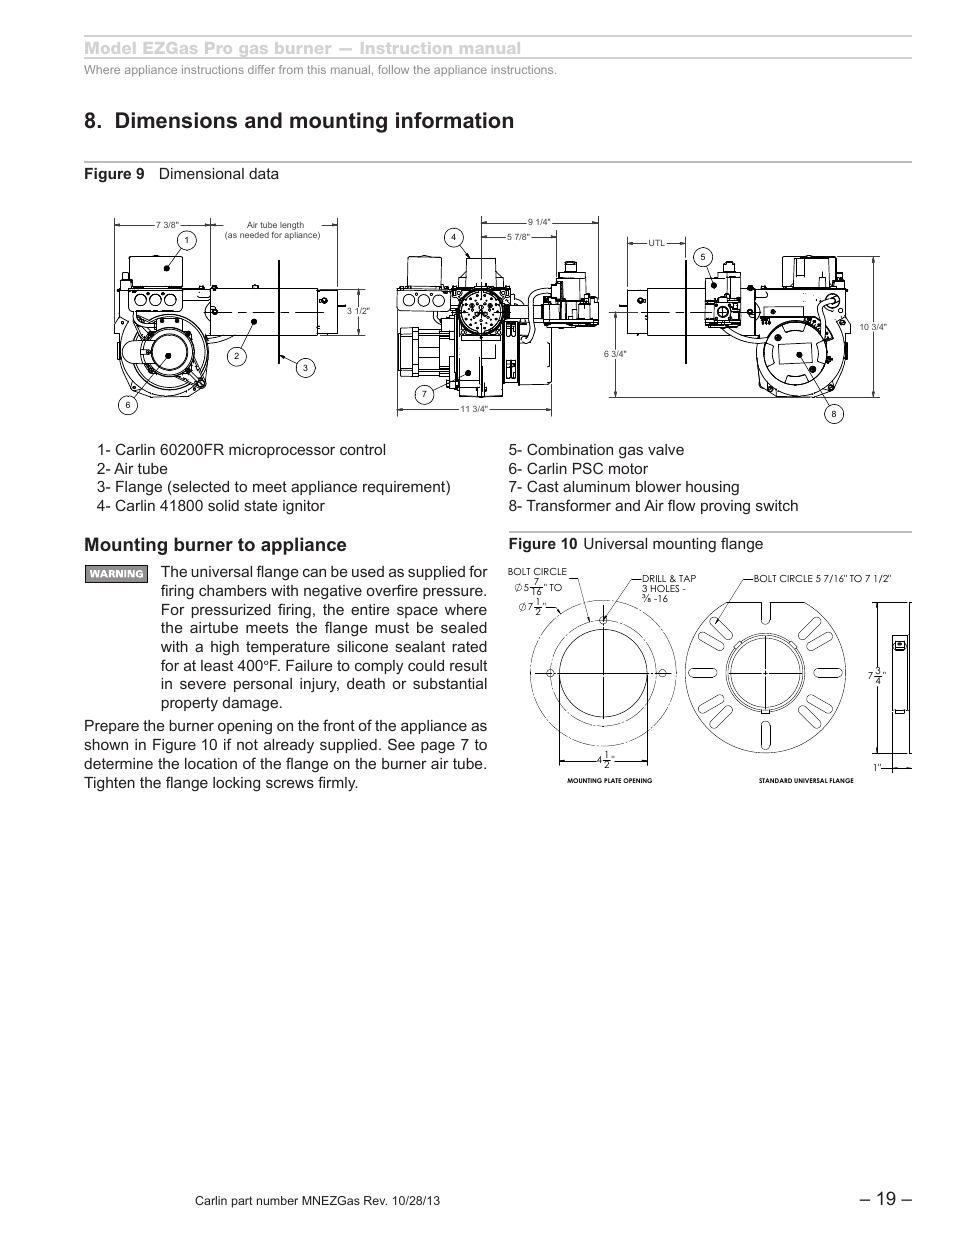 Dimensions and mounting information, Mounting burner to appliance, Model  ezgas pro gas burner —